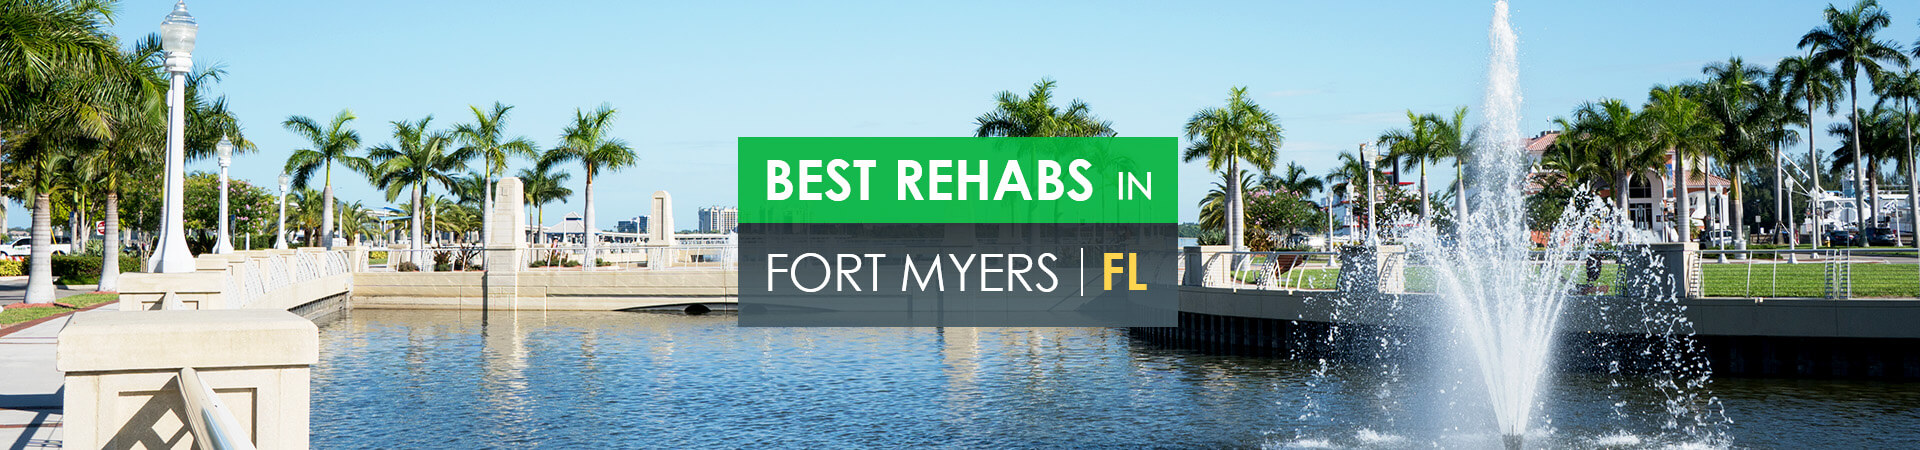 Best rehabs in Fort Myers, FL